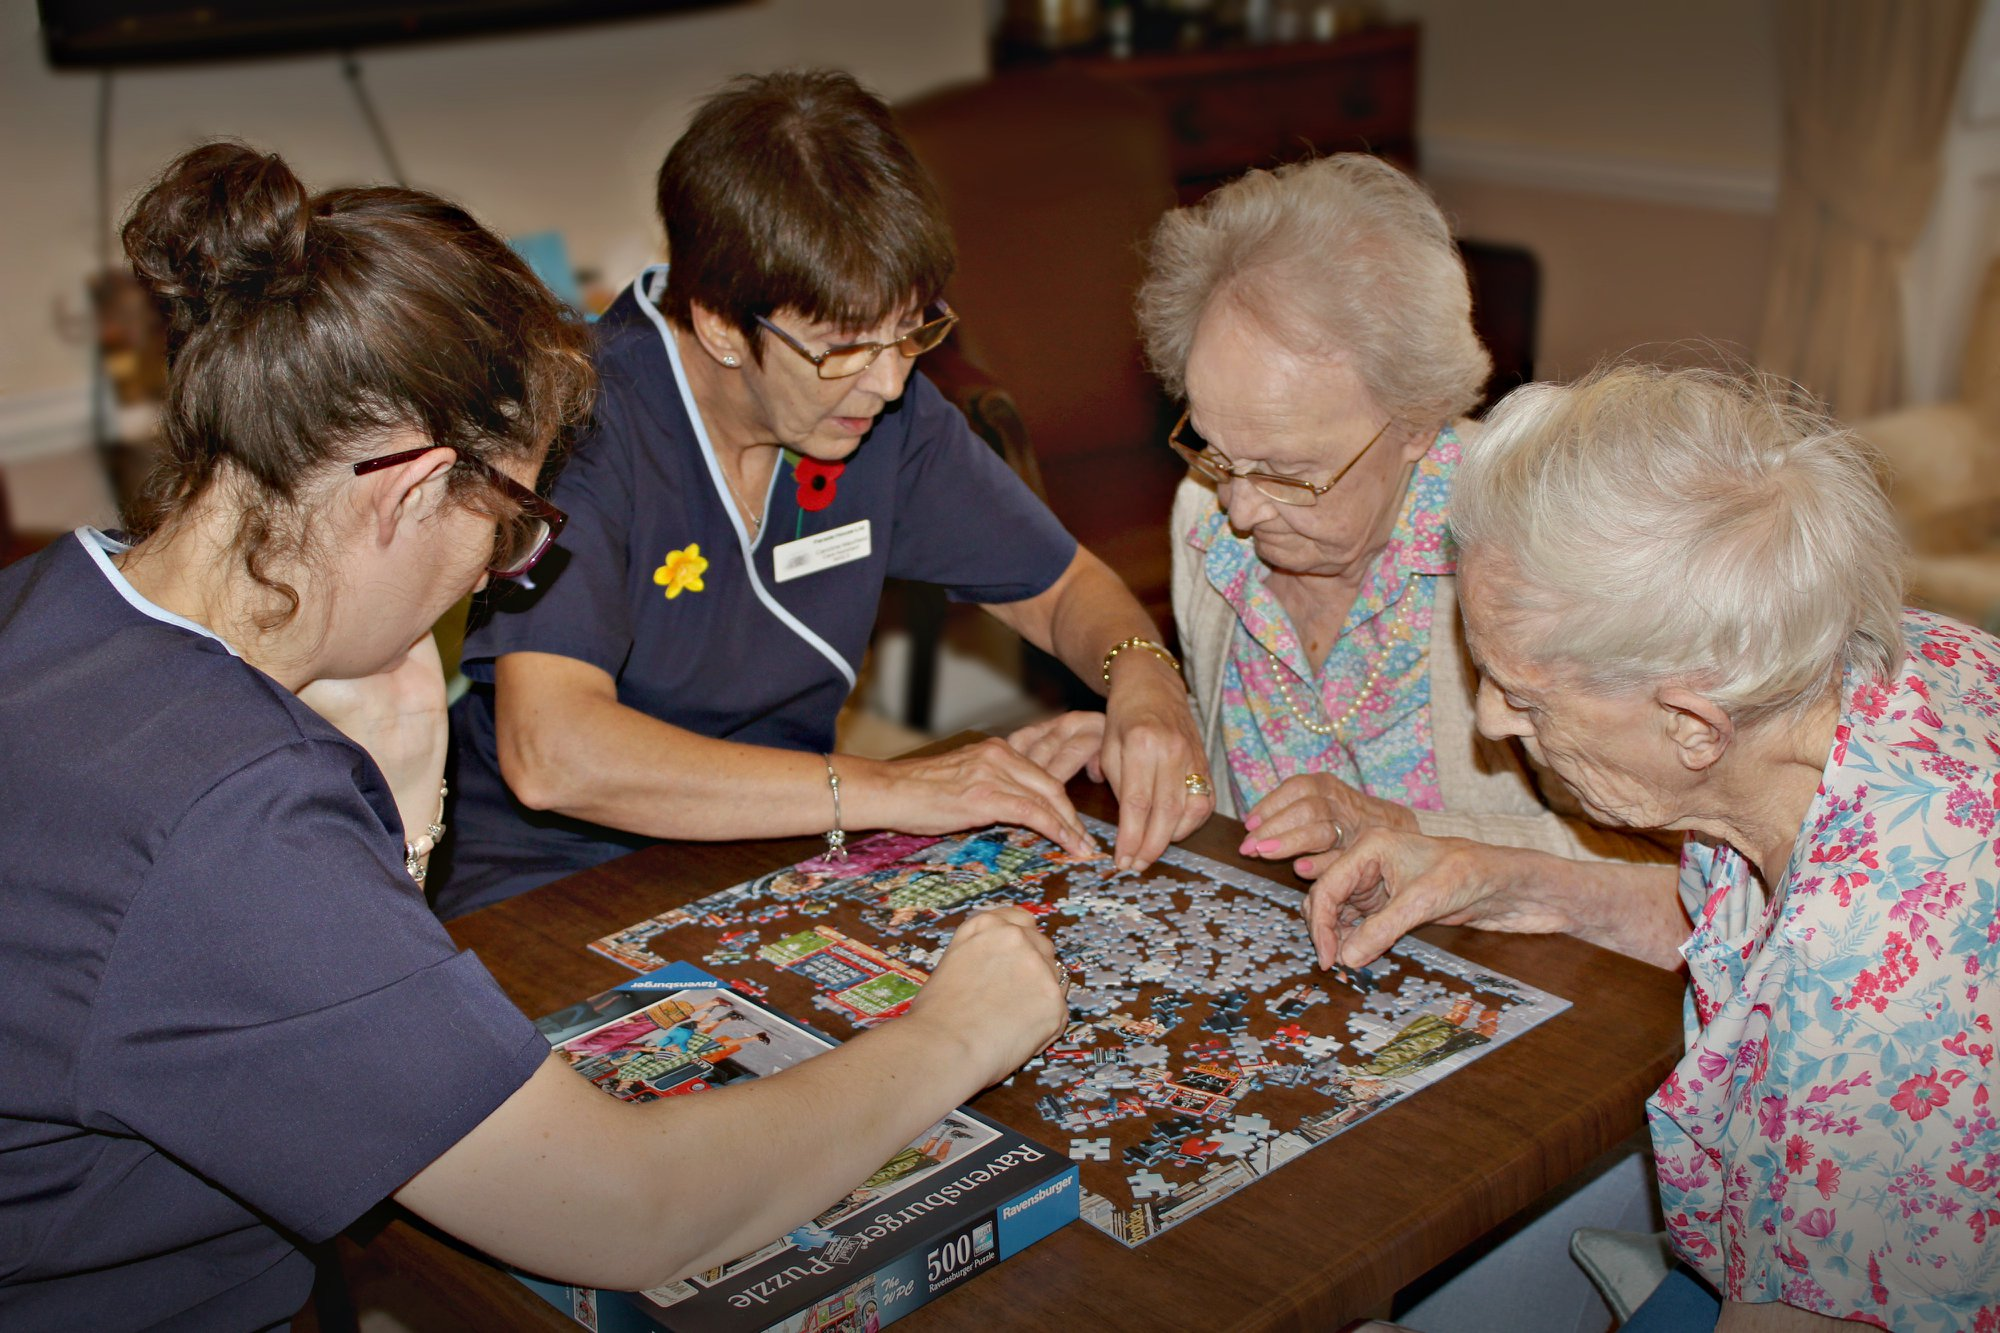 Parade House Activities - Staff and residents enjoying a puzzle at Parade House in Monmouth